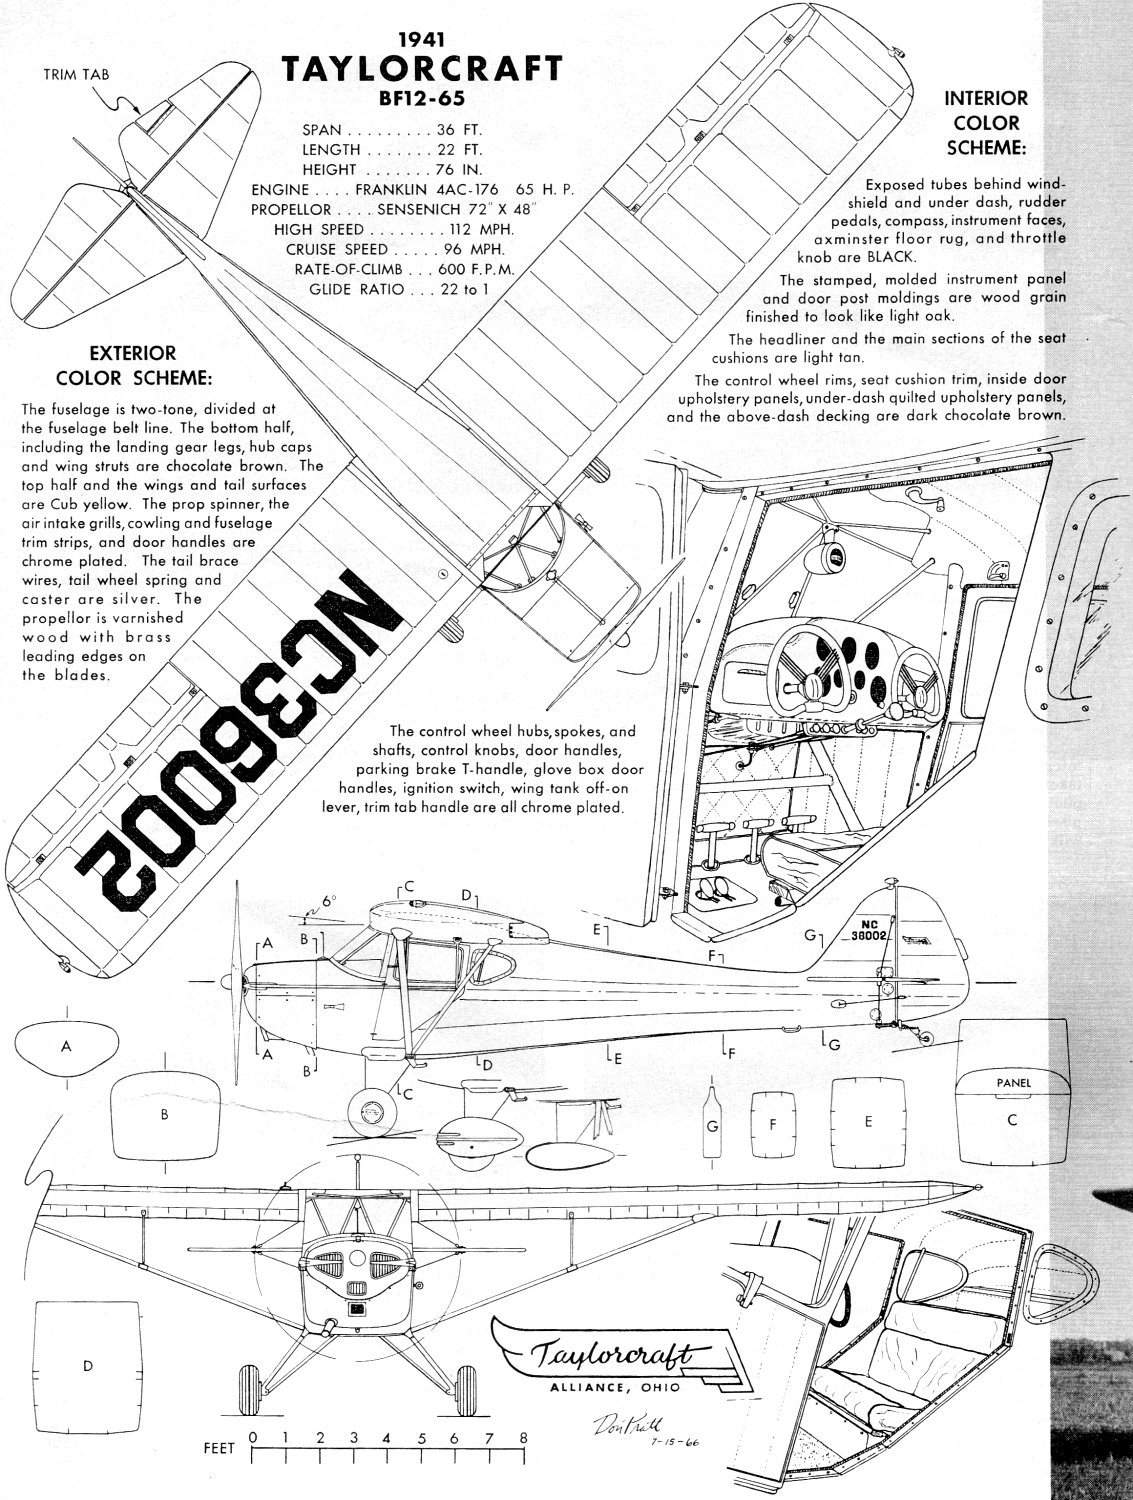 The Taylorcraft February American Aircraft Modeler